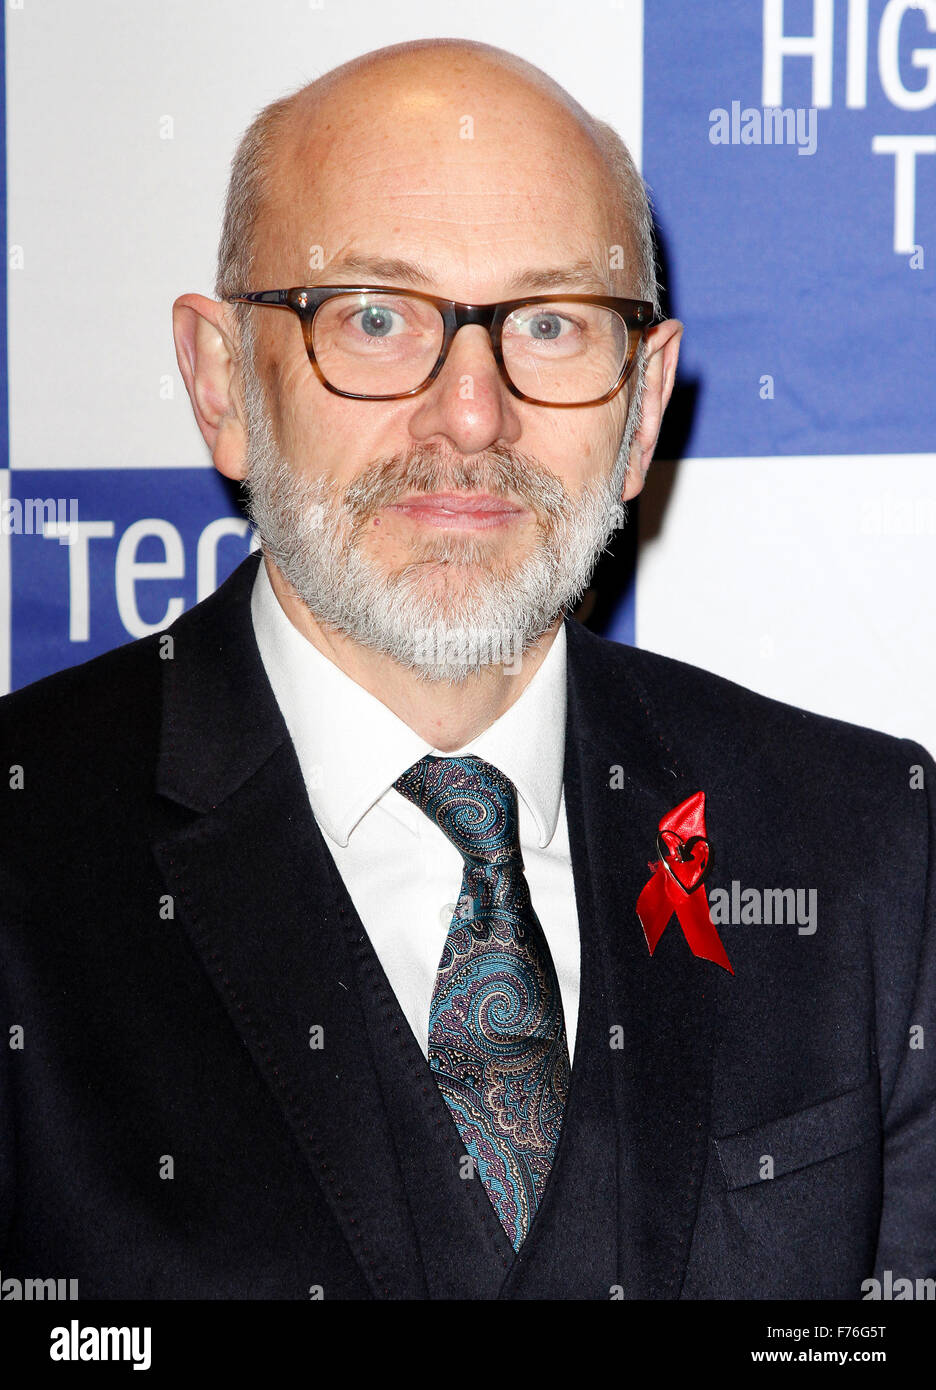 Mar 12, 2015 - London, England, UK - Vincent Franklin attends Terrence Higgins Trust 'The Auction' - Stock Image